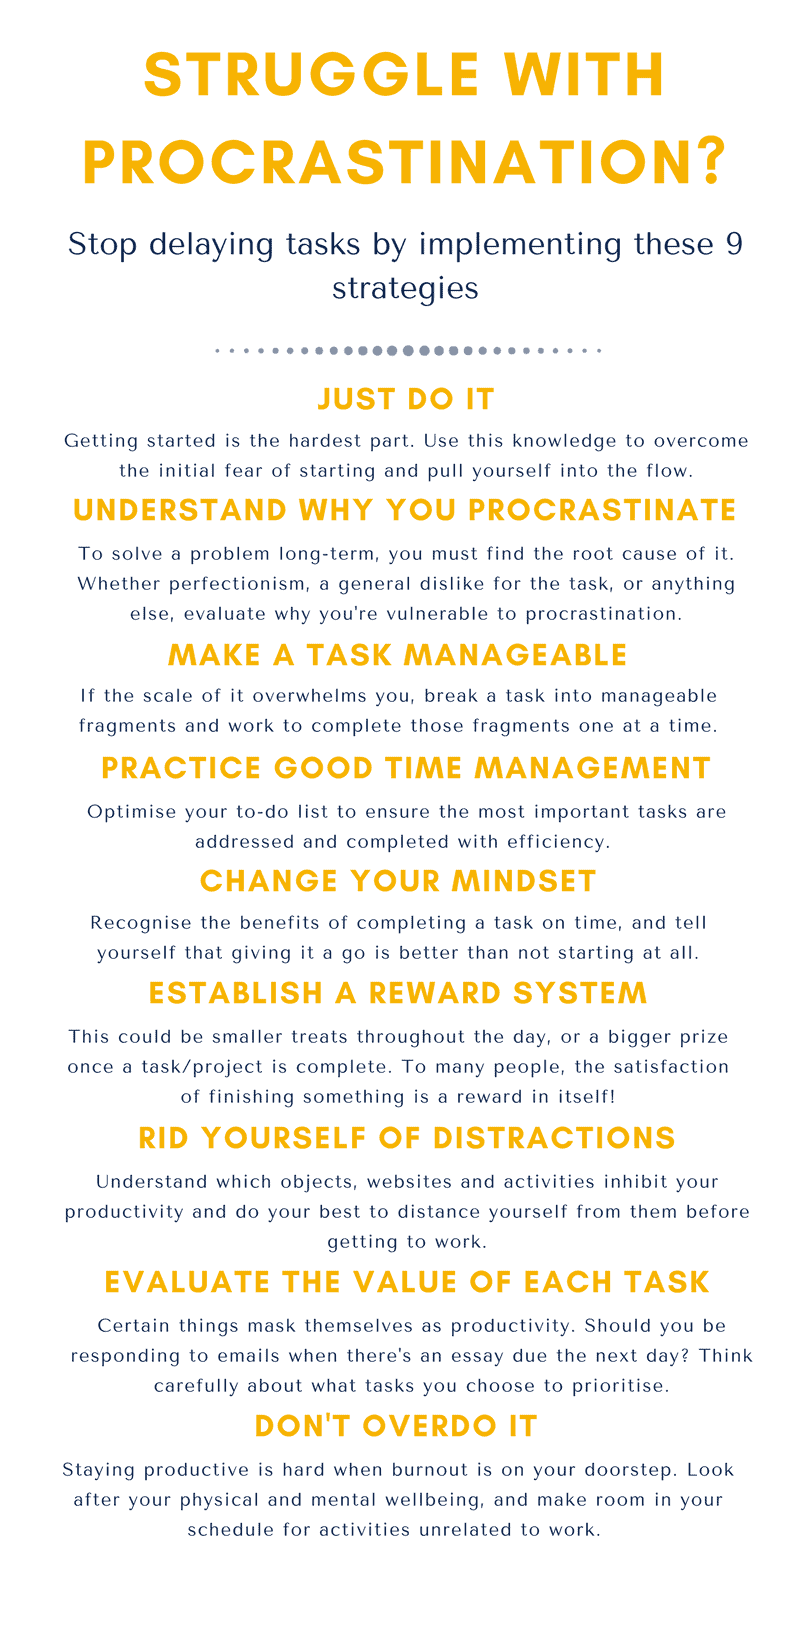 Struggling with procrastination? Use these nine strategies to overcome it and get things done with greater efficiency